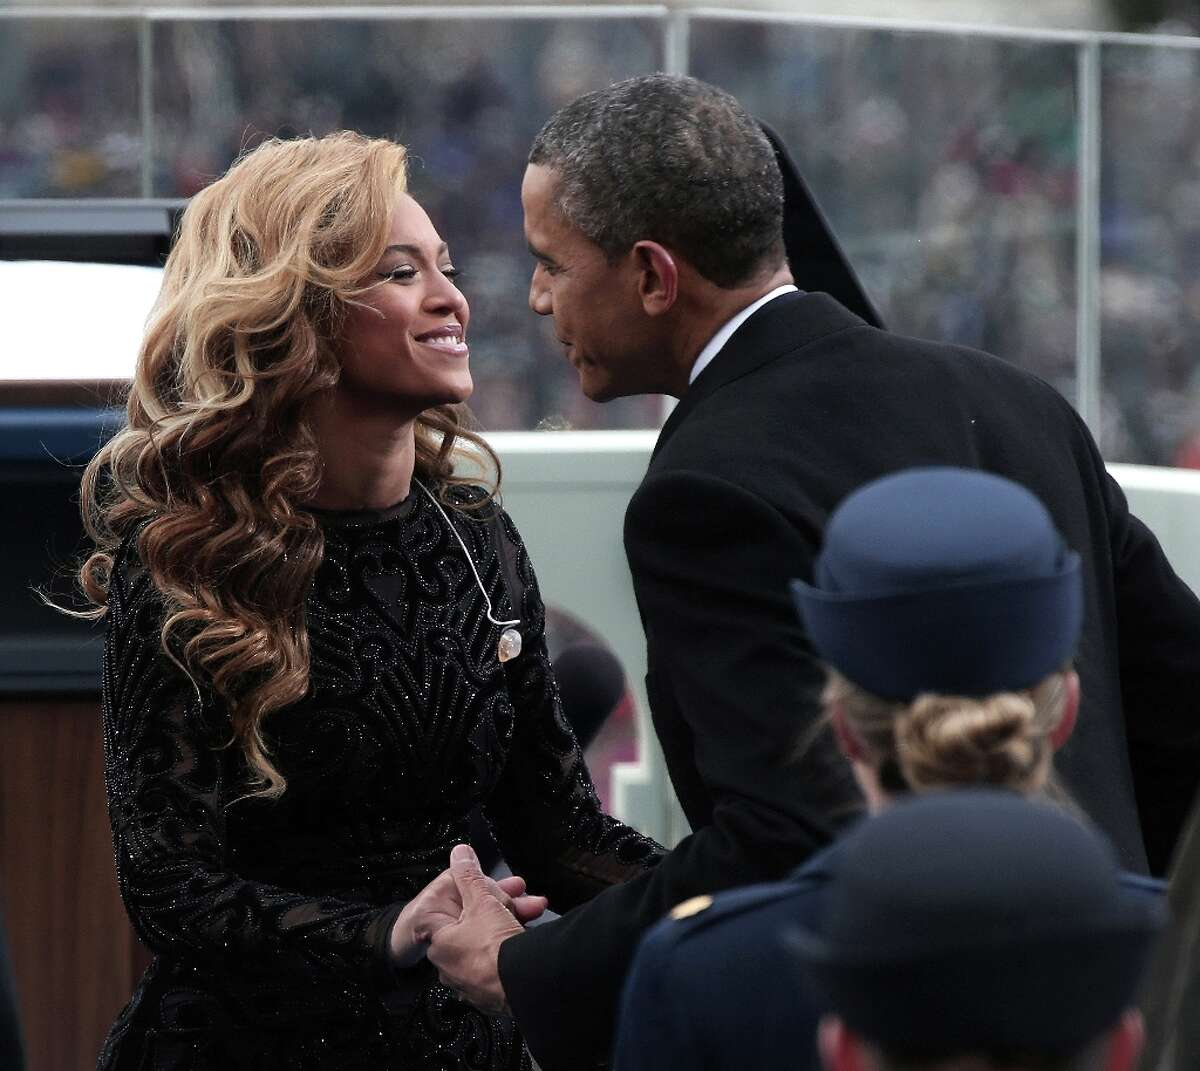 U.S. President Barack Obama greets singer Beyonce after she performs the National Anthem during the public ceremonial inauguration on the West Front of the U.S. Capitol January 21, 2013 in Washington, DC. Barack Obama was re-elected for a second term as President of the United States.